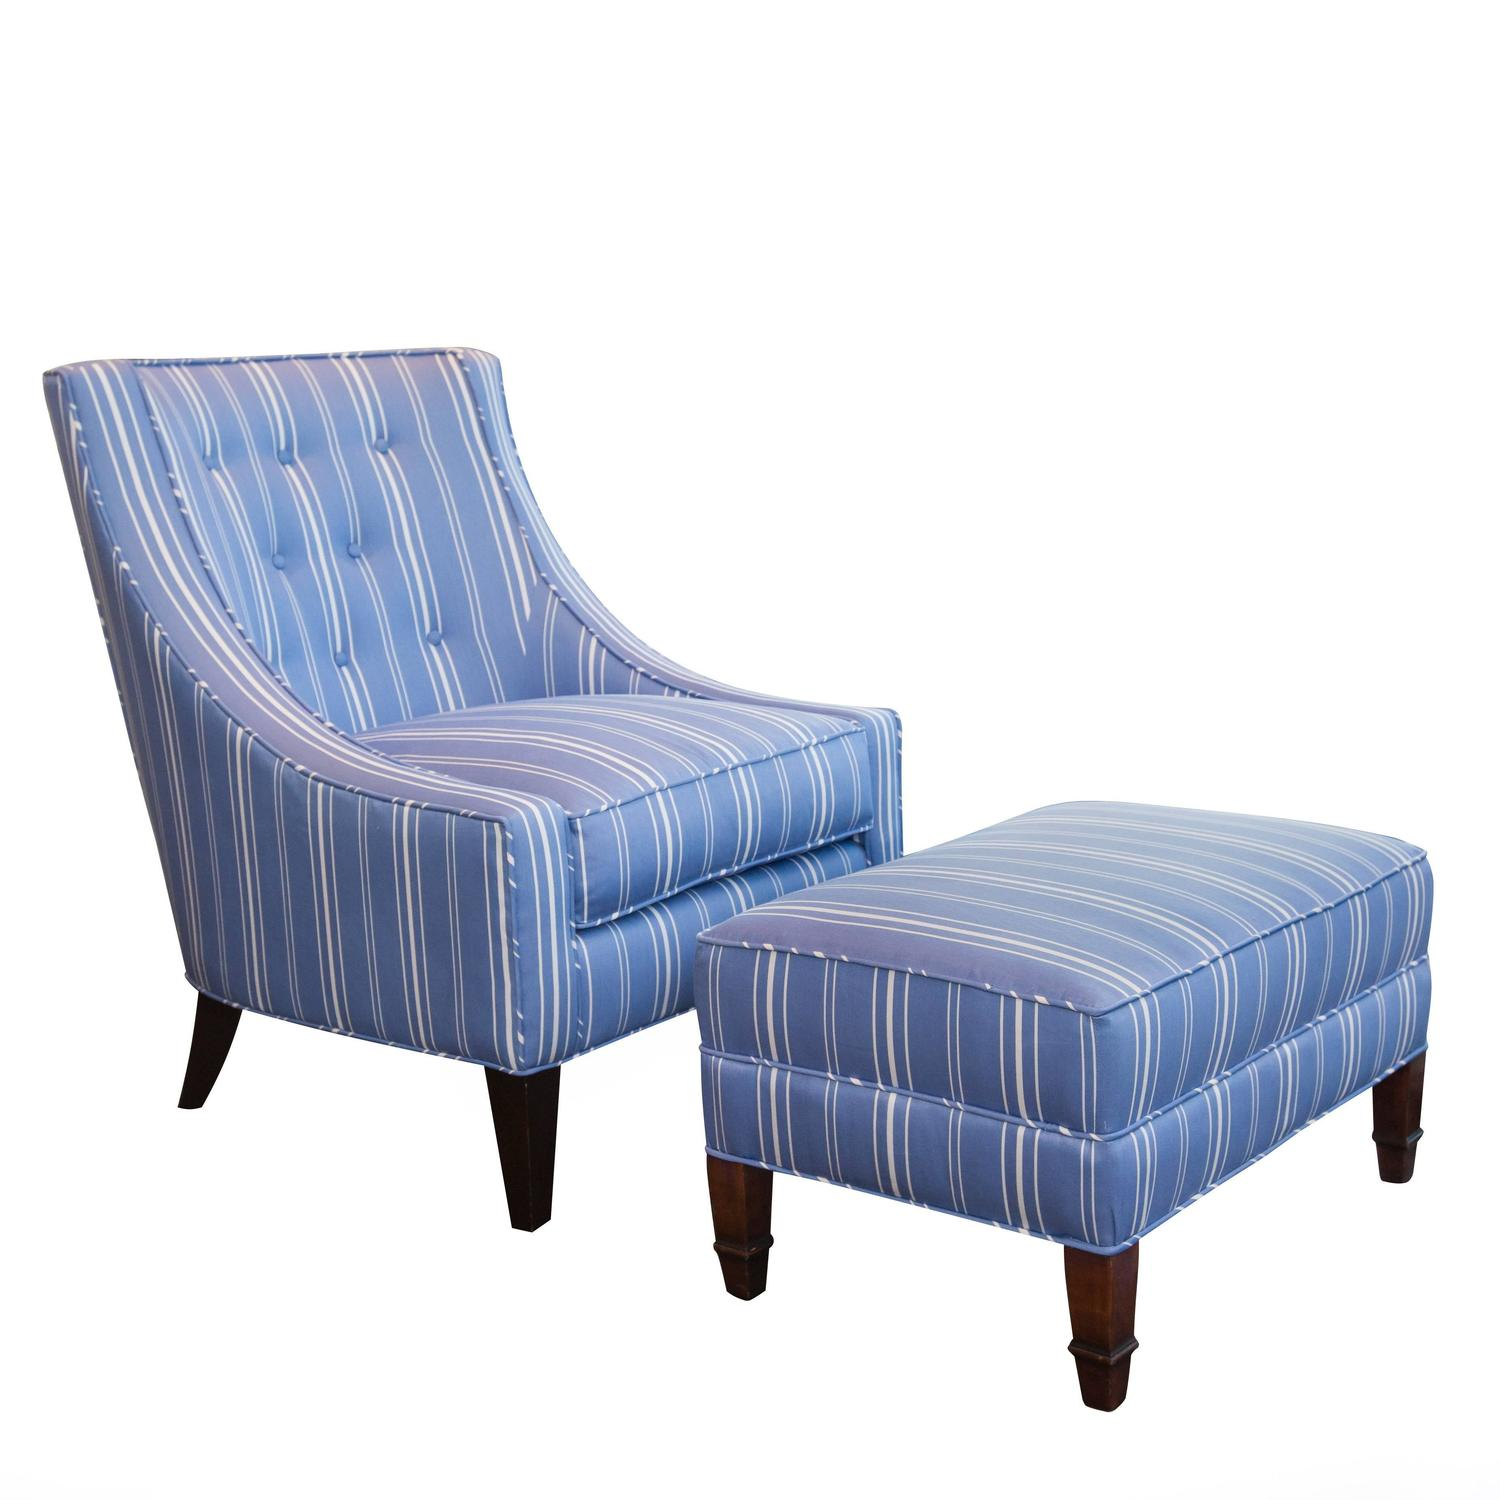 Blue And White Chair Blue And White Upholstered Lounge Chair And Ottoman At 1stdibs